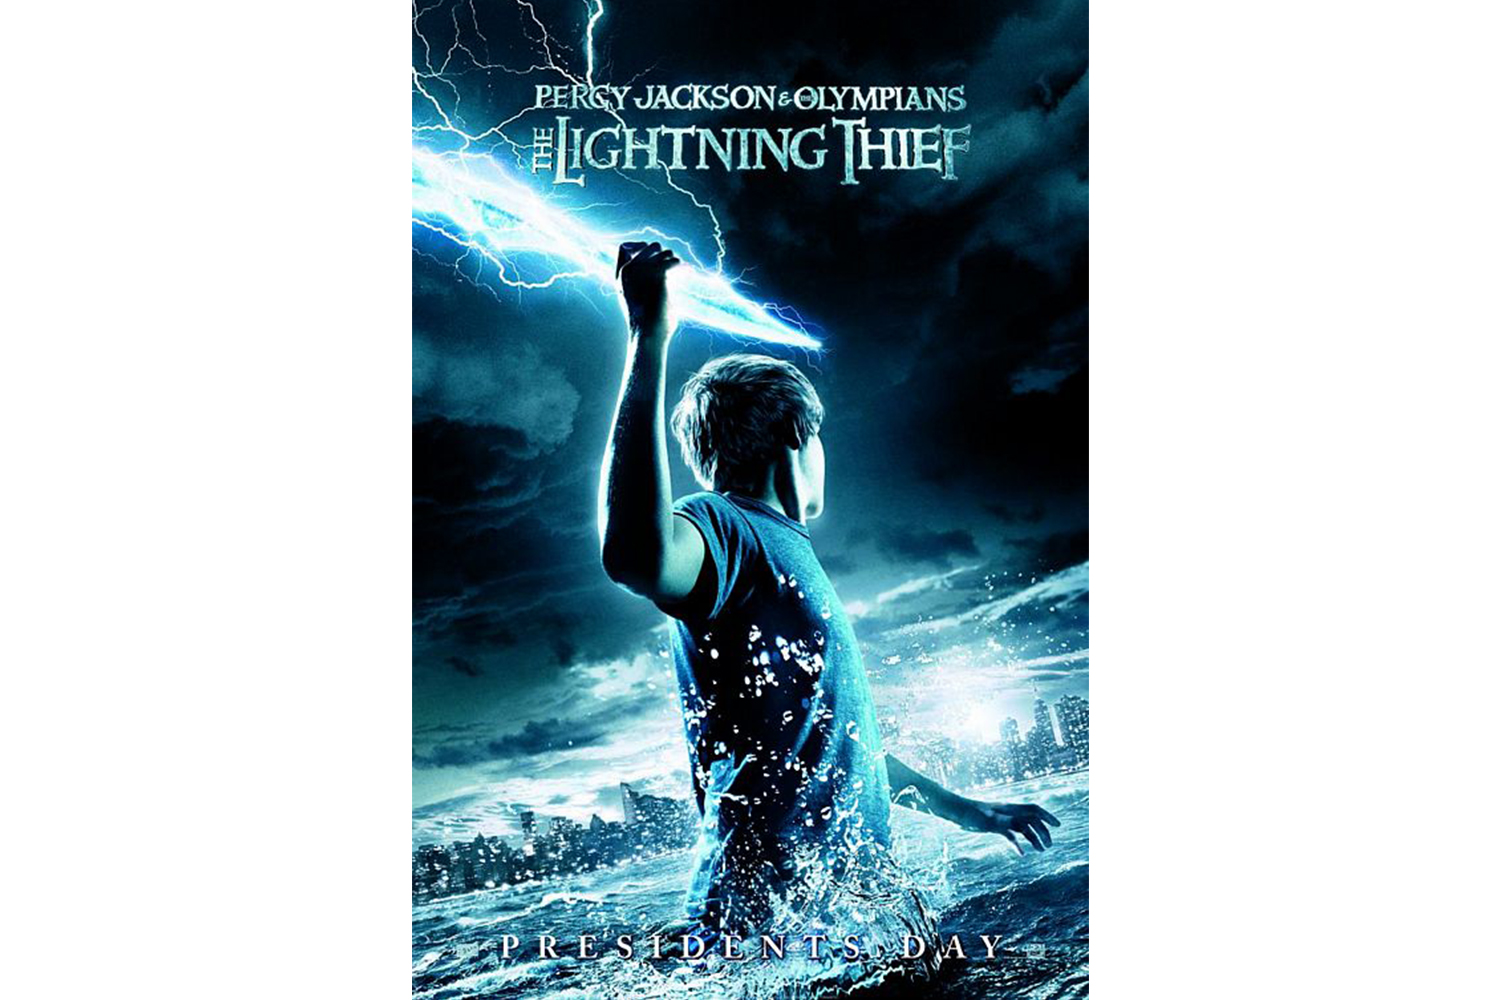 percy_jackson_and_the_olympians_the_lightning_thief_ver2.jpg